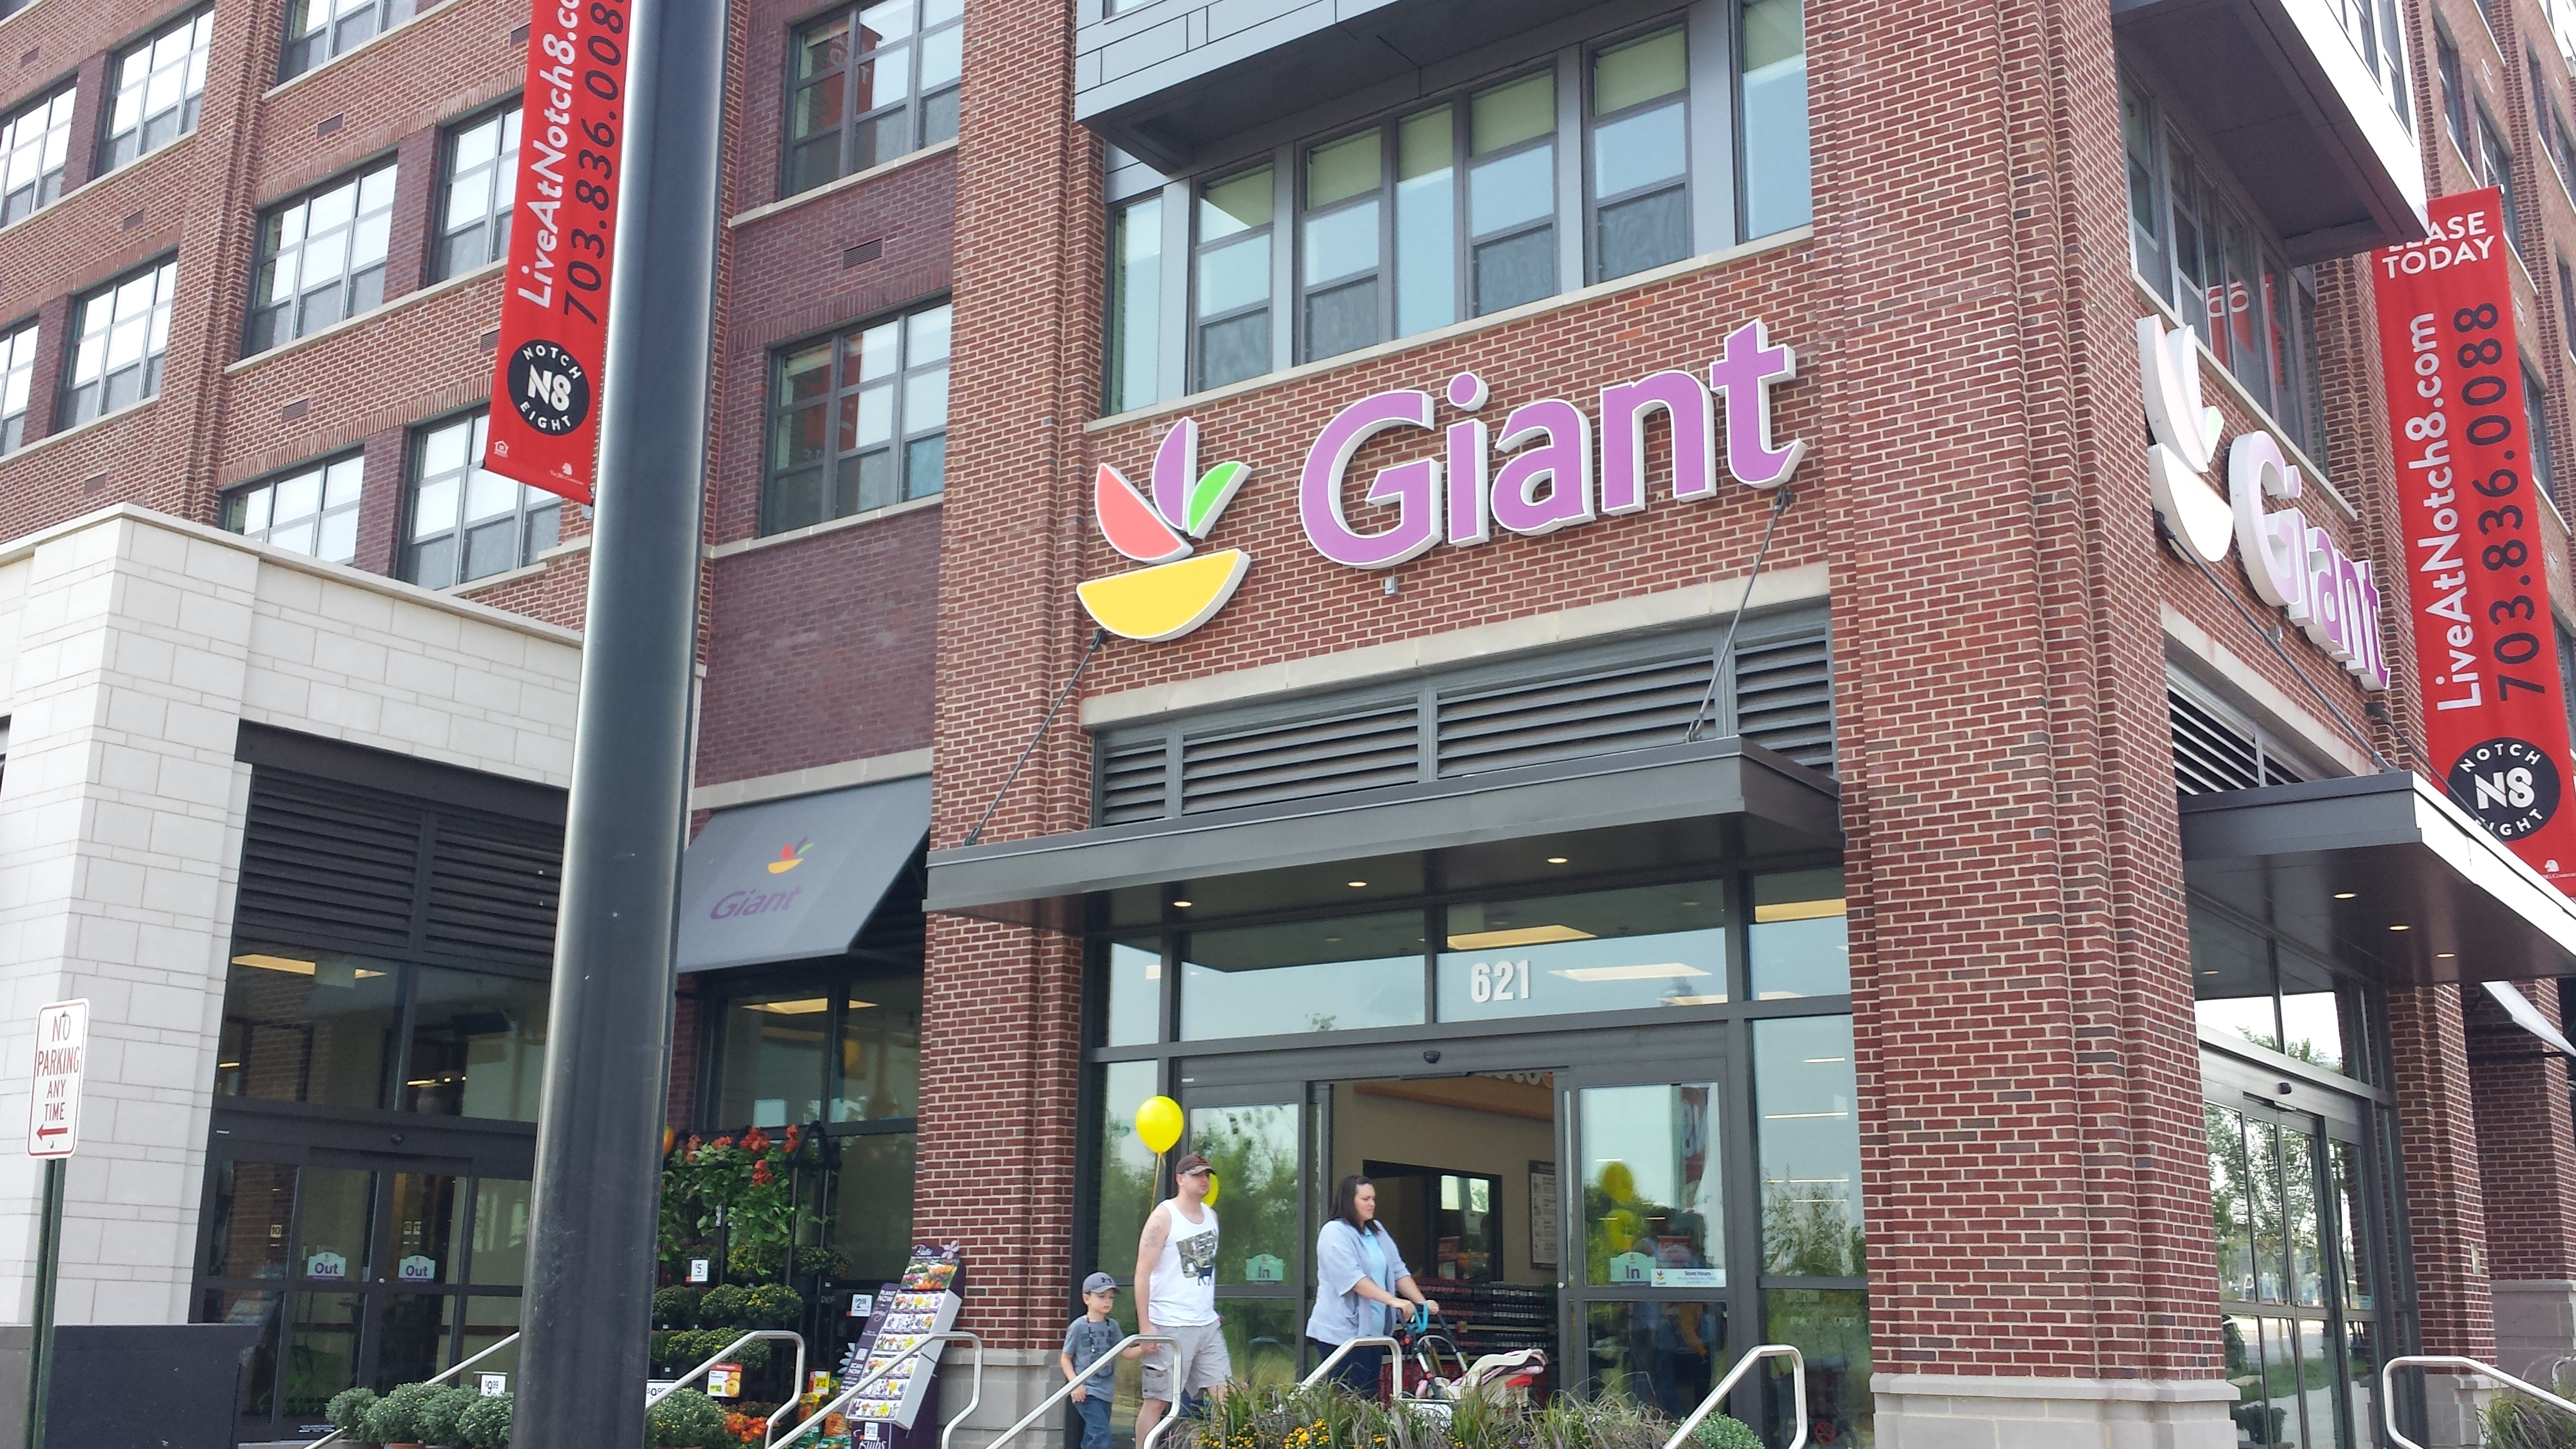 Giant opens new store in Alexandria